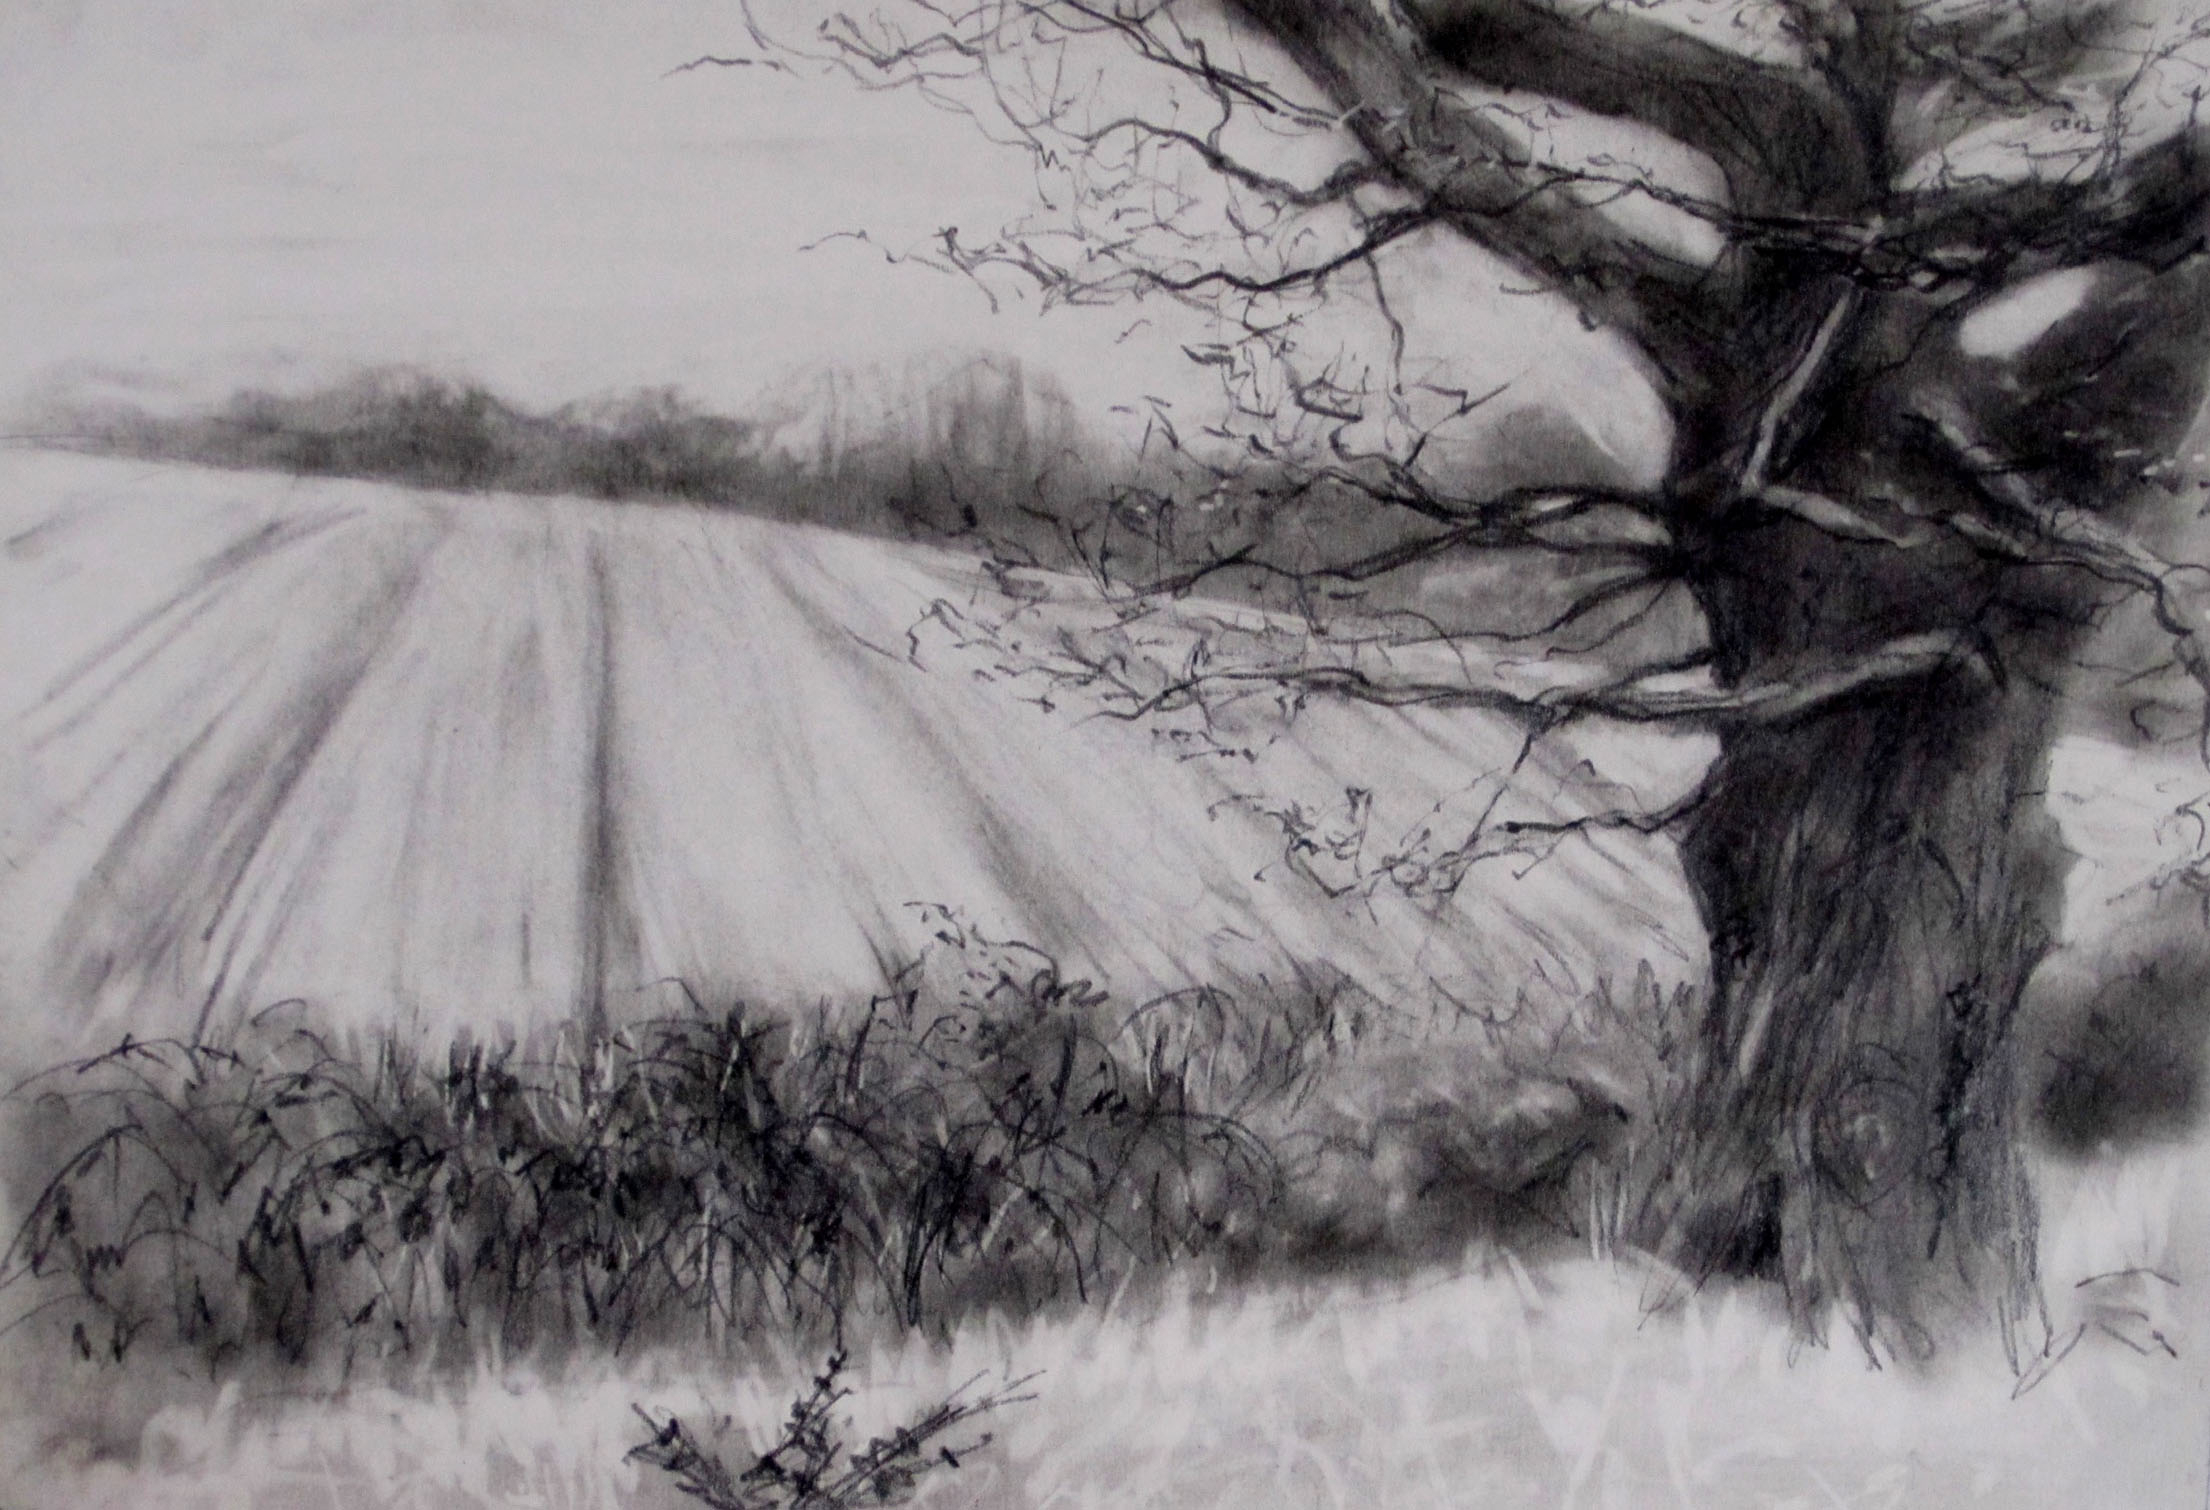 View over the Ditch , Graphite on paper, 22 x 15 cm